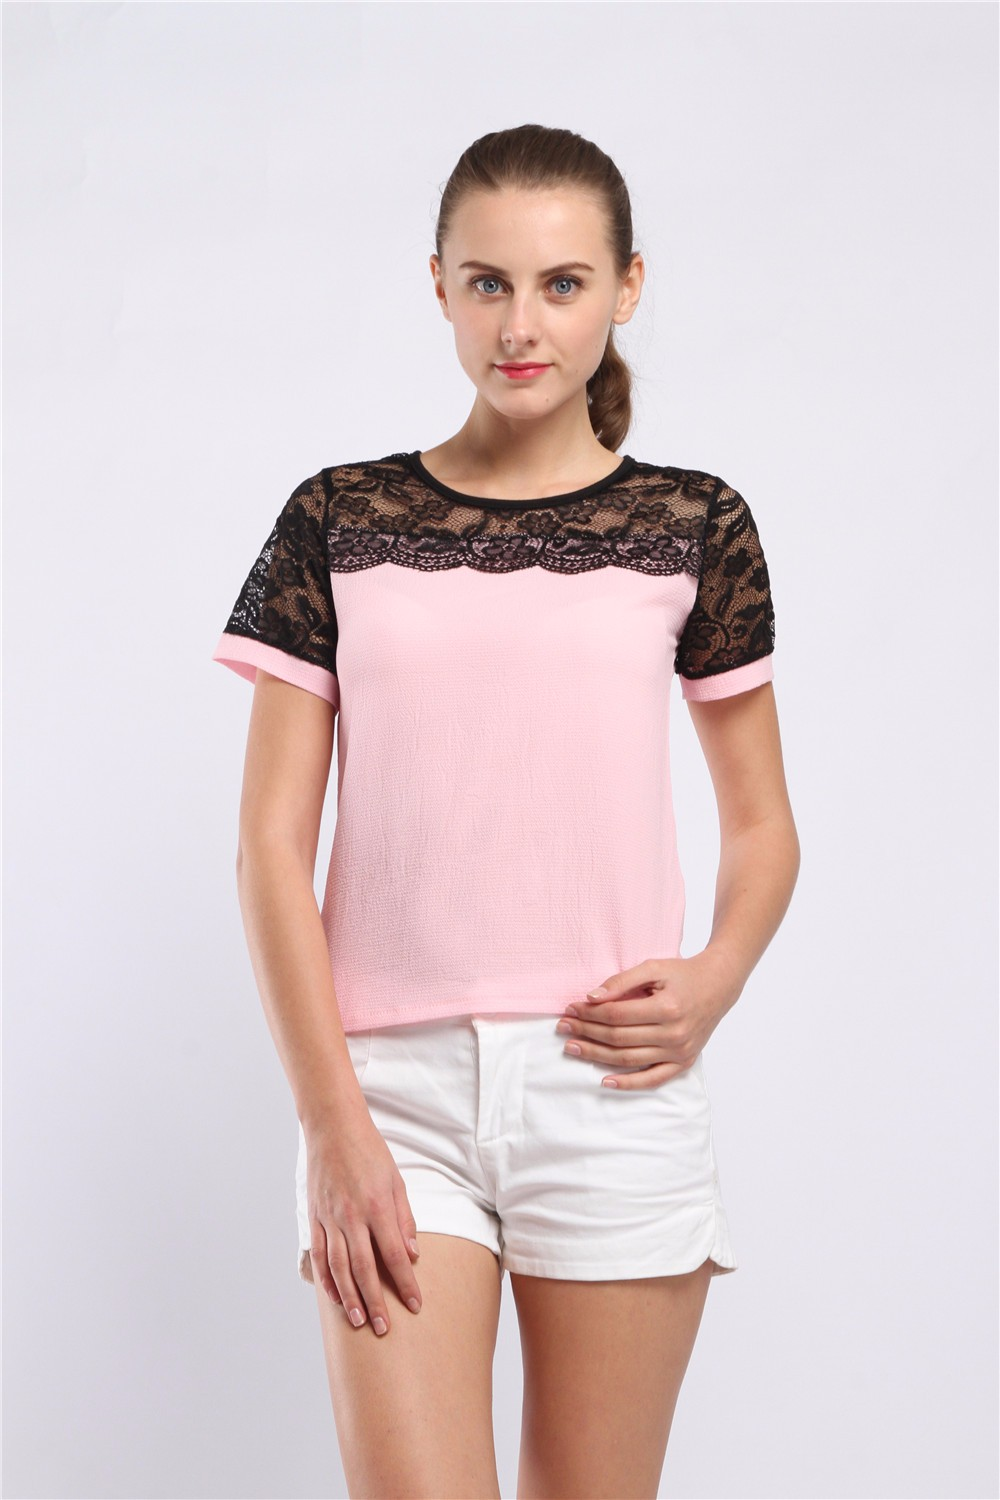 Women Blouses Summer Lace Chiffon Blouse Casual Blusa Feminina Tops Fashion Chemise Femme Shirts Plus Size 5XL Red White Pink 15